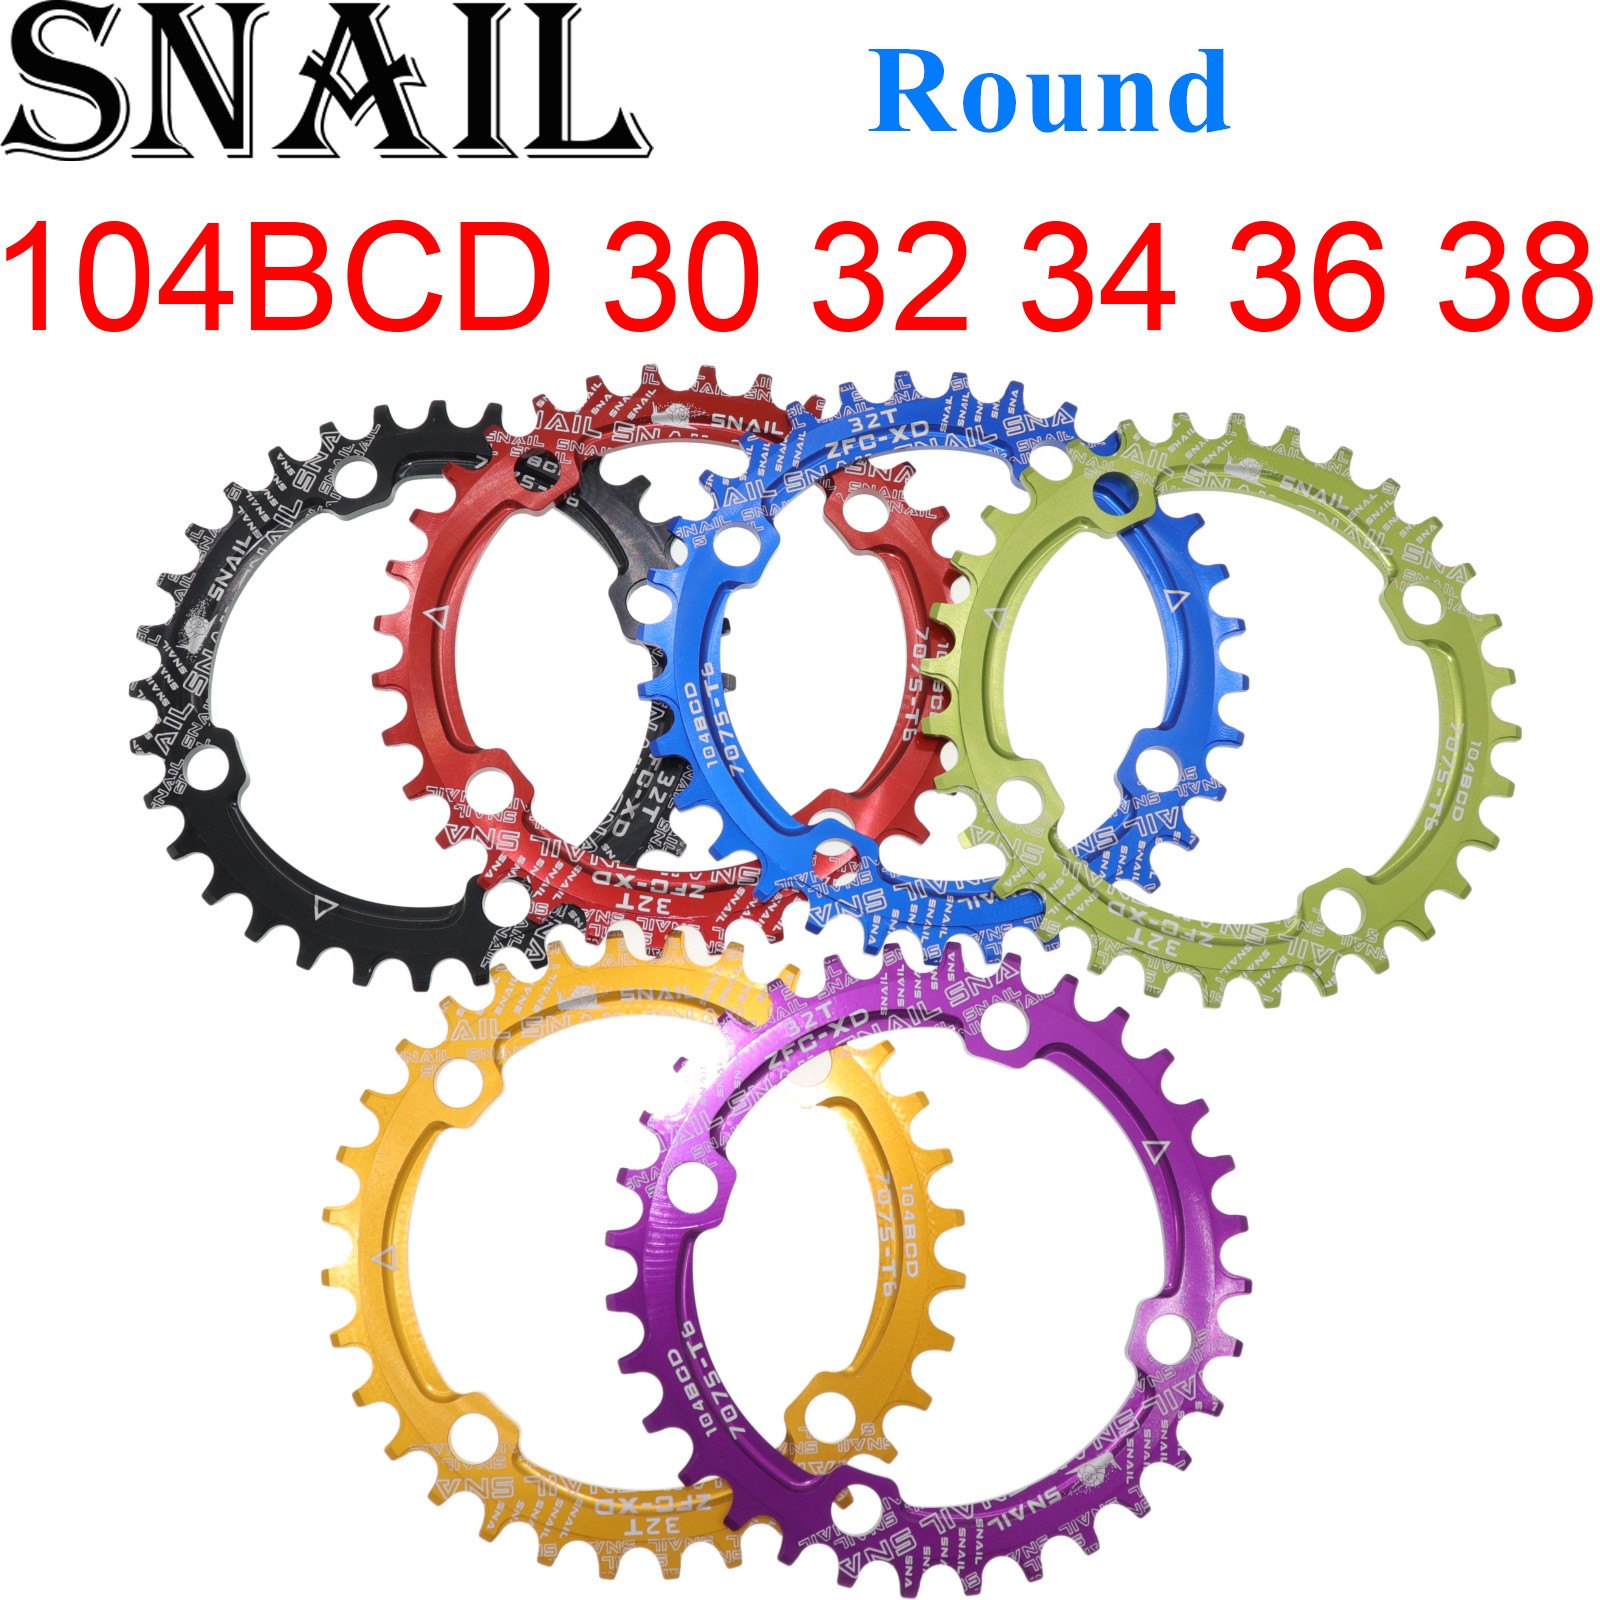 SNAIL 104BCD Round Bike Bicycle MTB Chainring <font><b>32T</b></font> 34T 36T 38T <font><b>Narrow</b></font> <font><b>Wide</b></font> Ultralight Tooth Plate MTB Mountain BCD 104 Chainwheel image